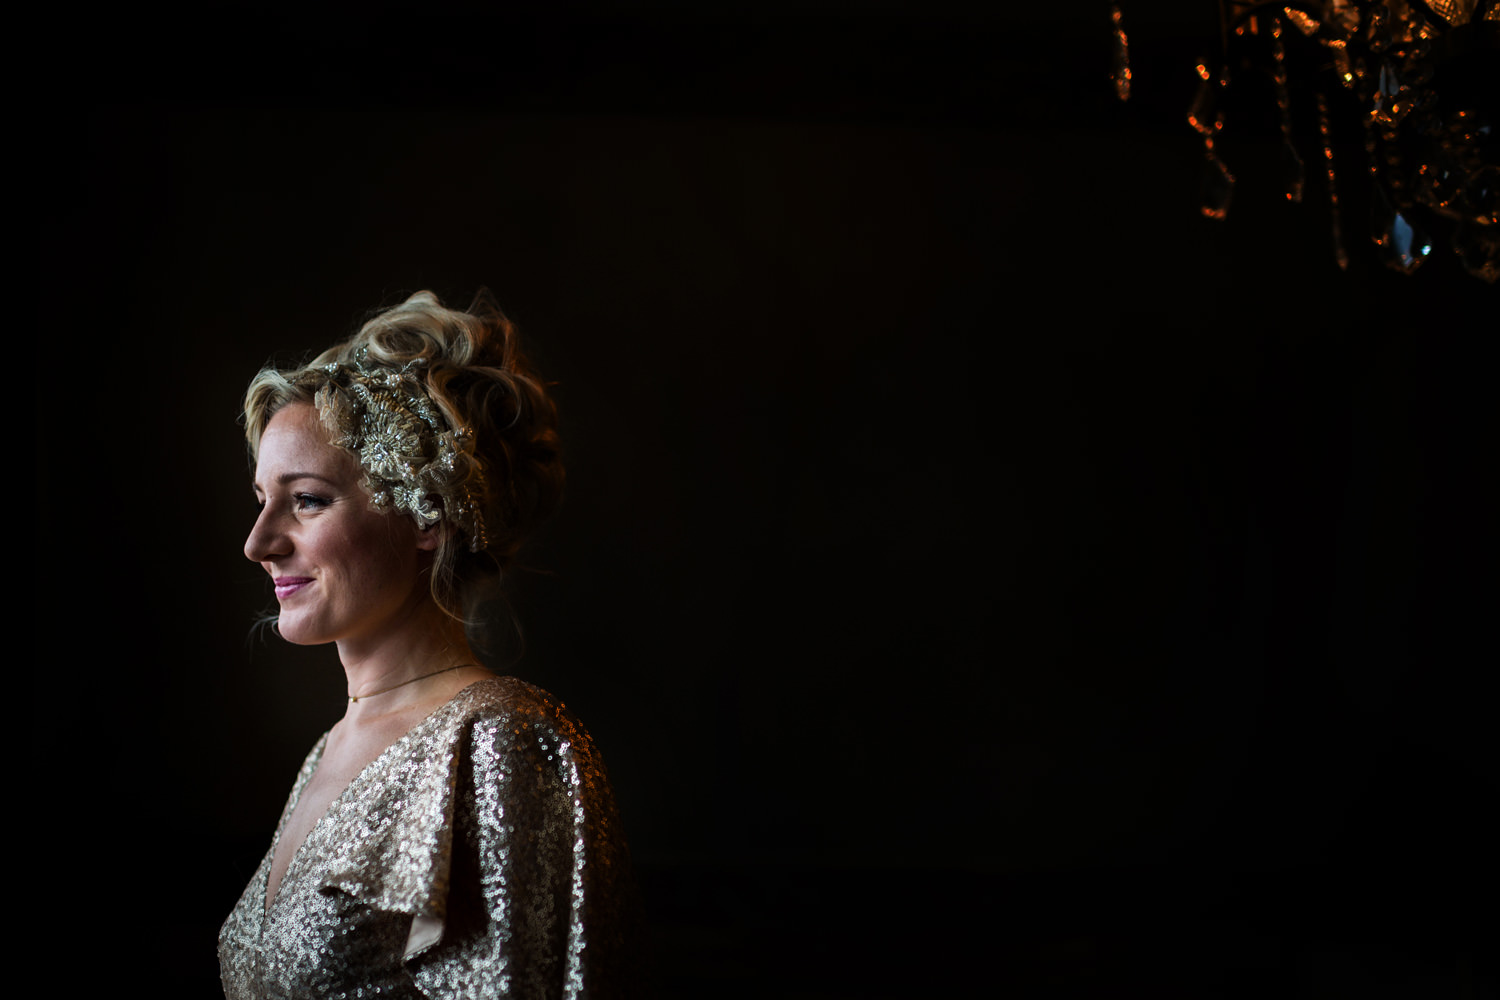 The-Bell-Inn-Ticehurst-Wedding-Photographer11